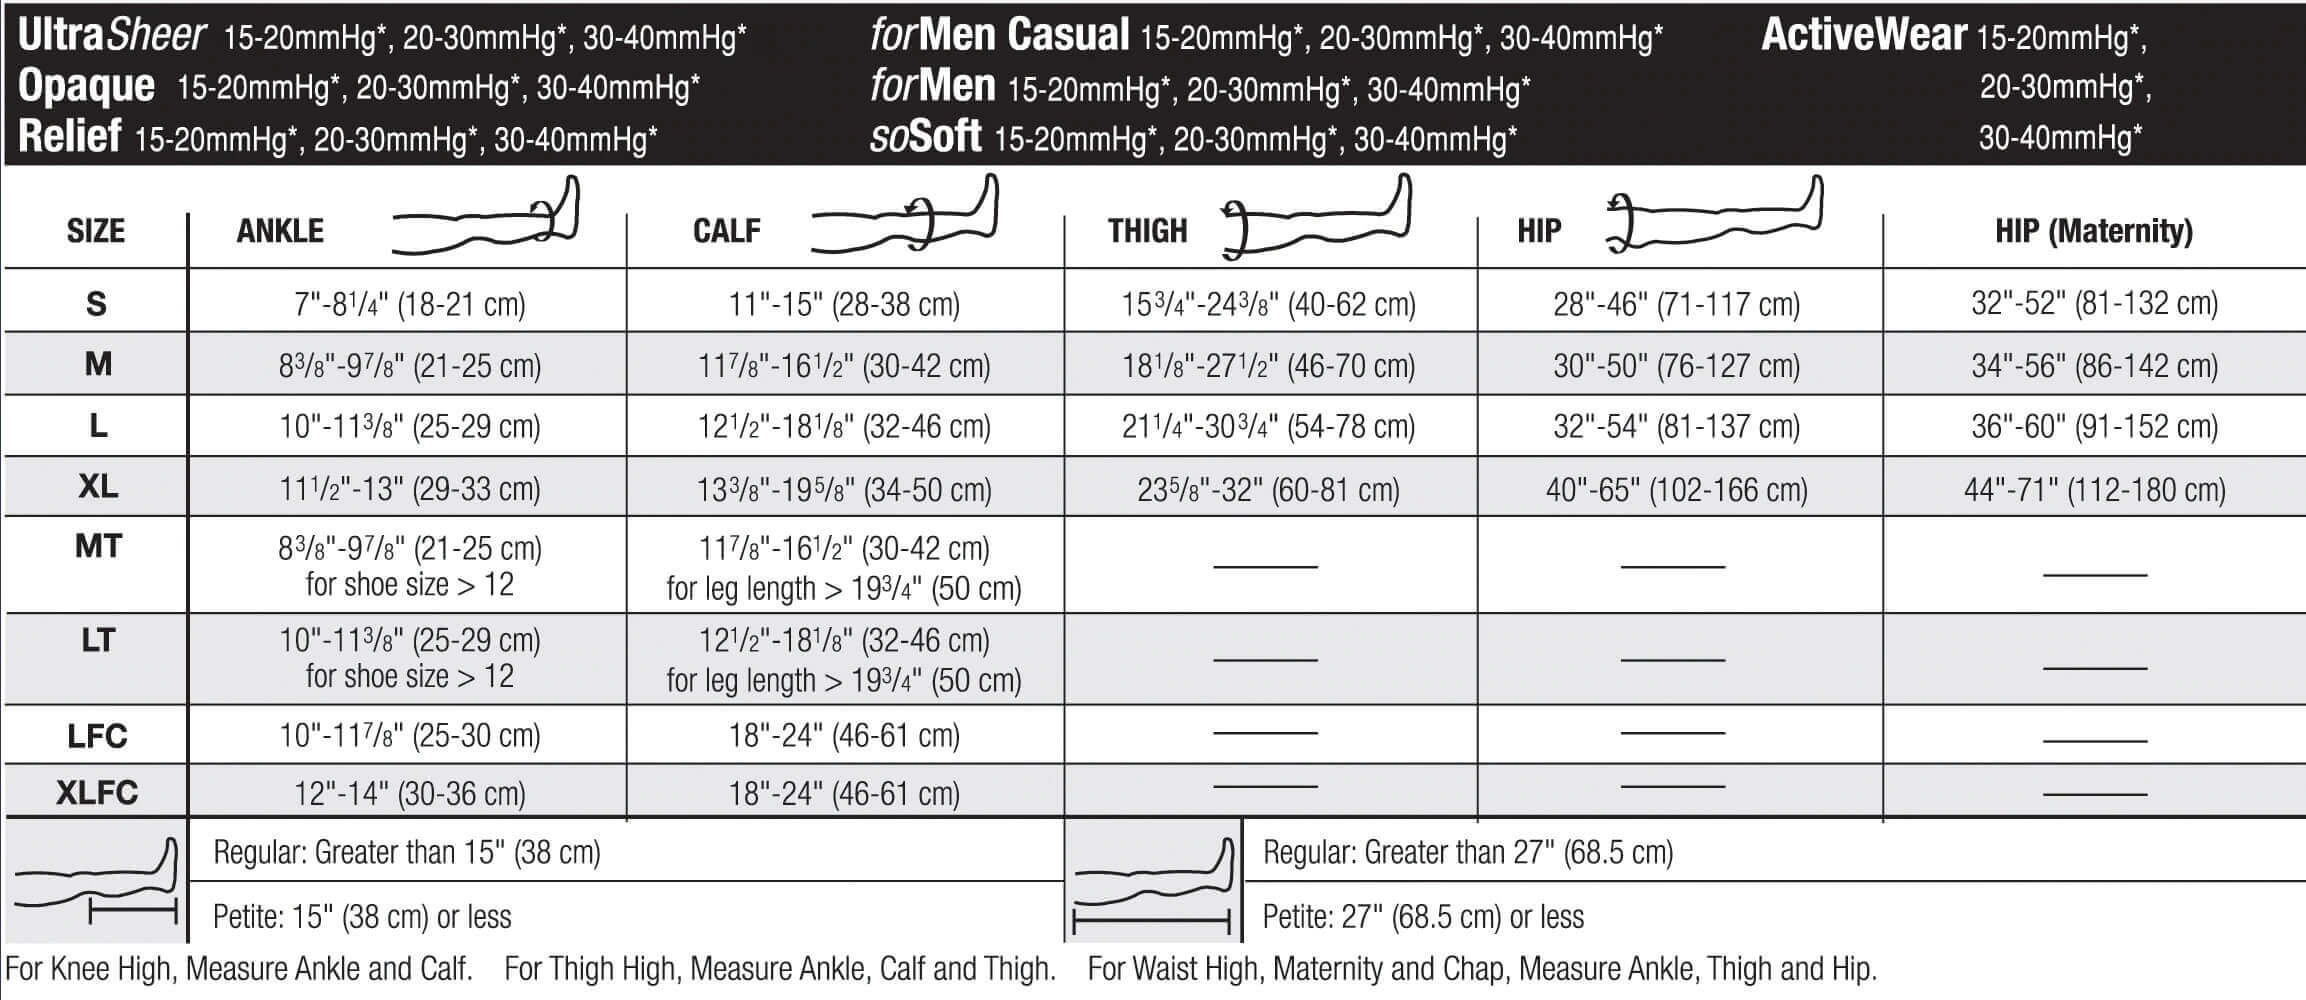 jobst-opaque-compression-stockings-sizing-chart-2.jpg